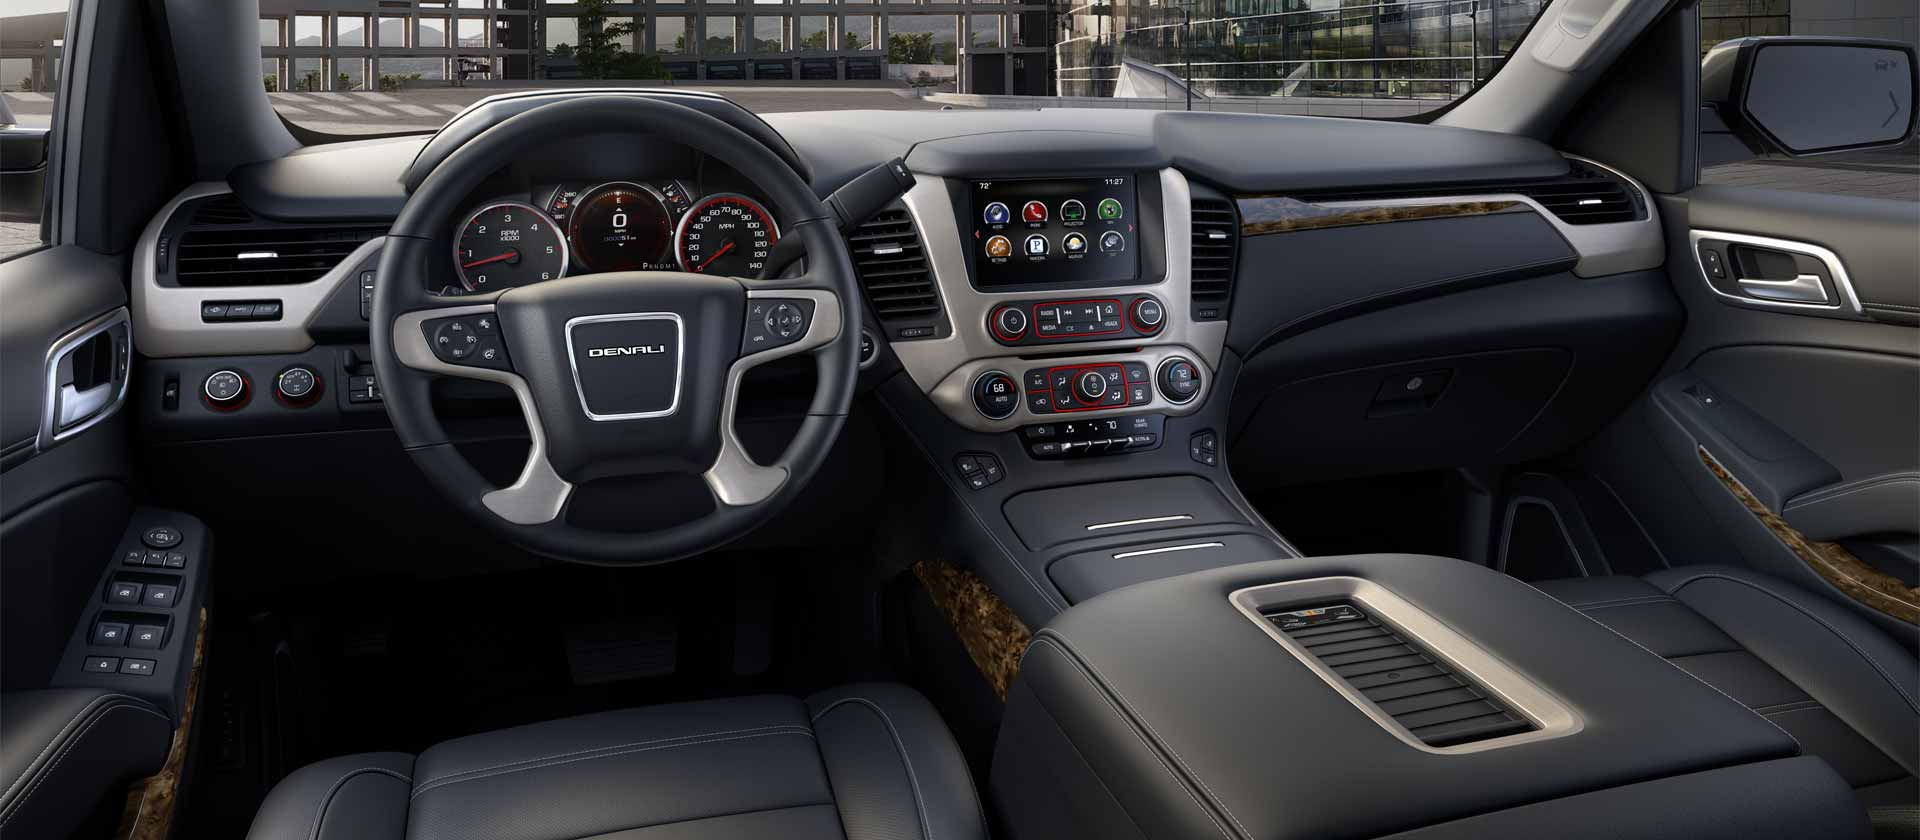 More Powerful Engine In Upgraded 2017 Gmc Yukon Cardinale Gmc